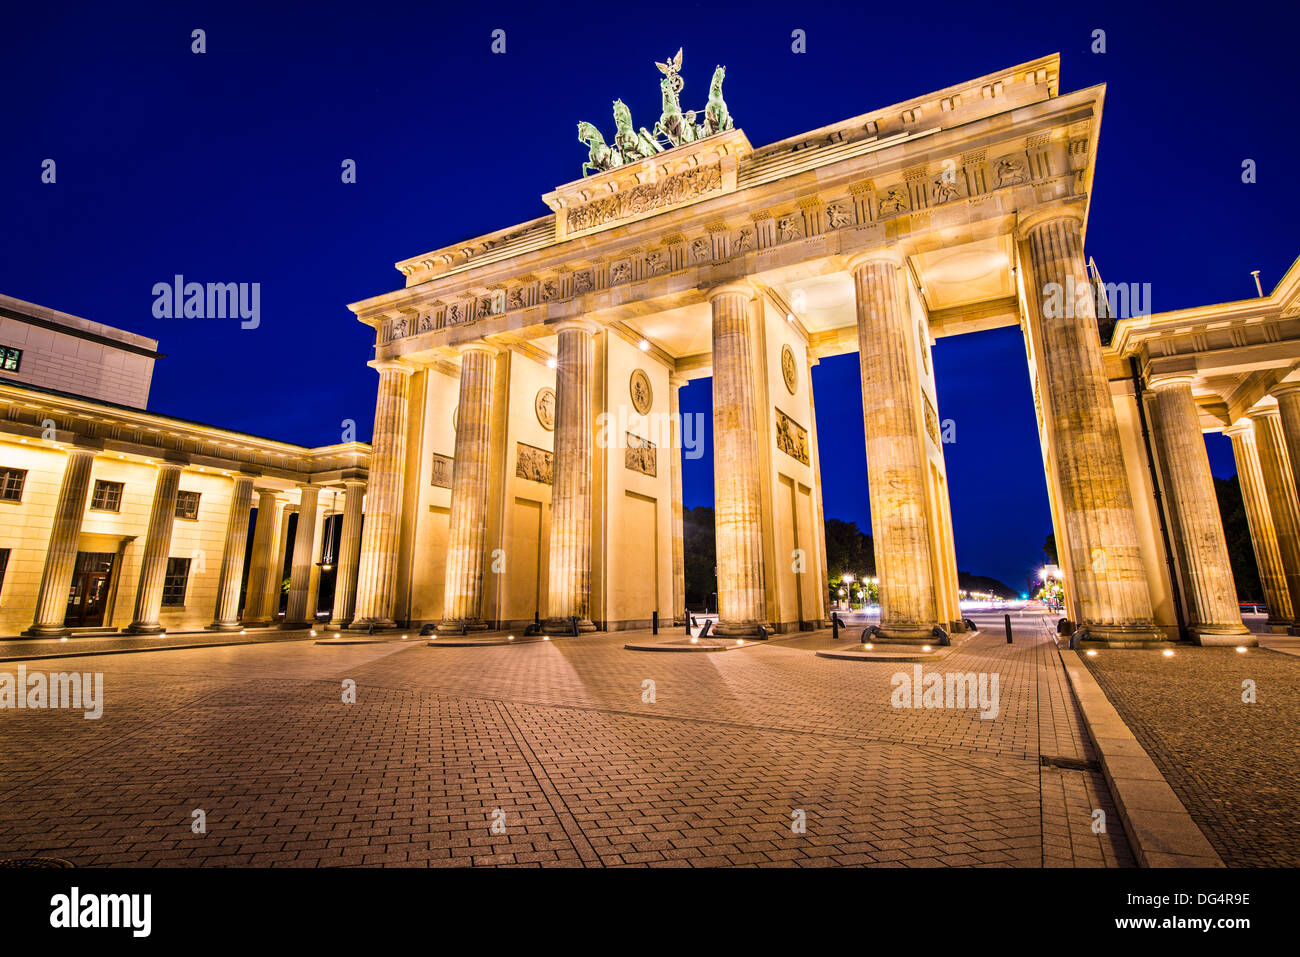 Brandenburg Gate in Berlin, Germany. - Stock Image